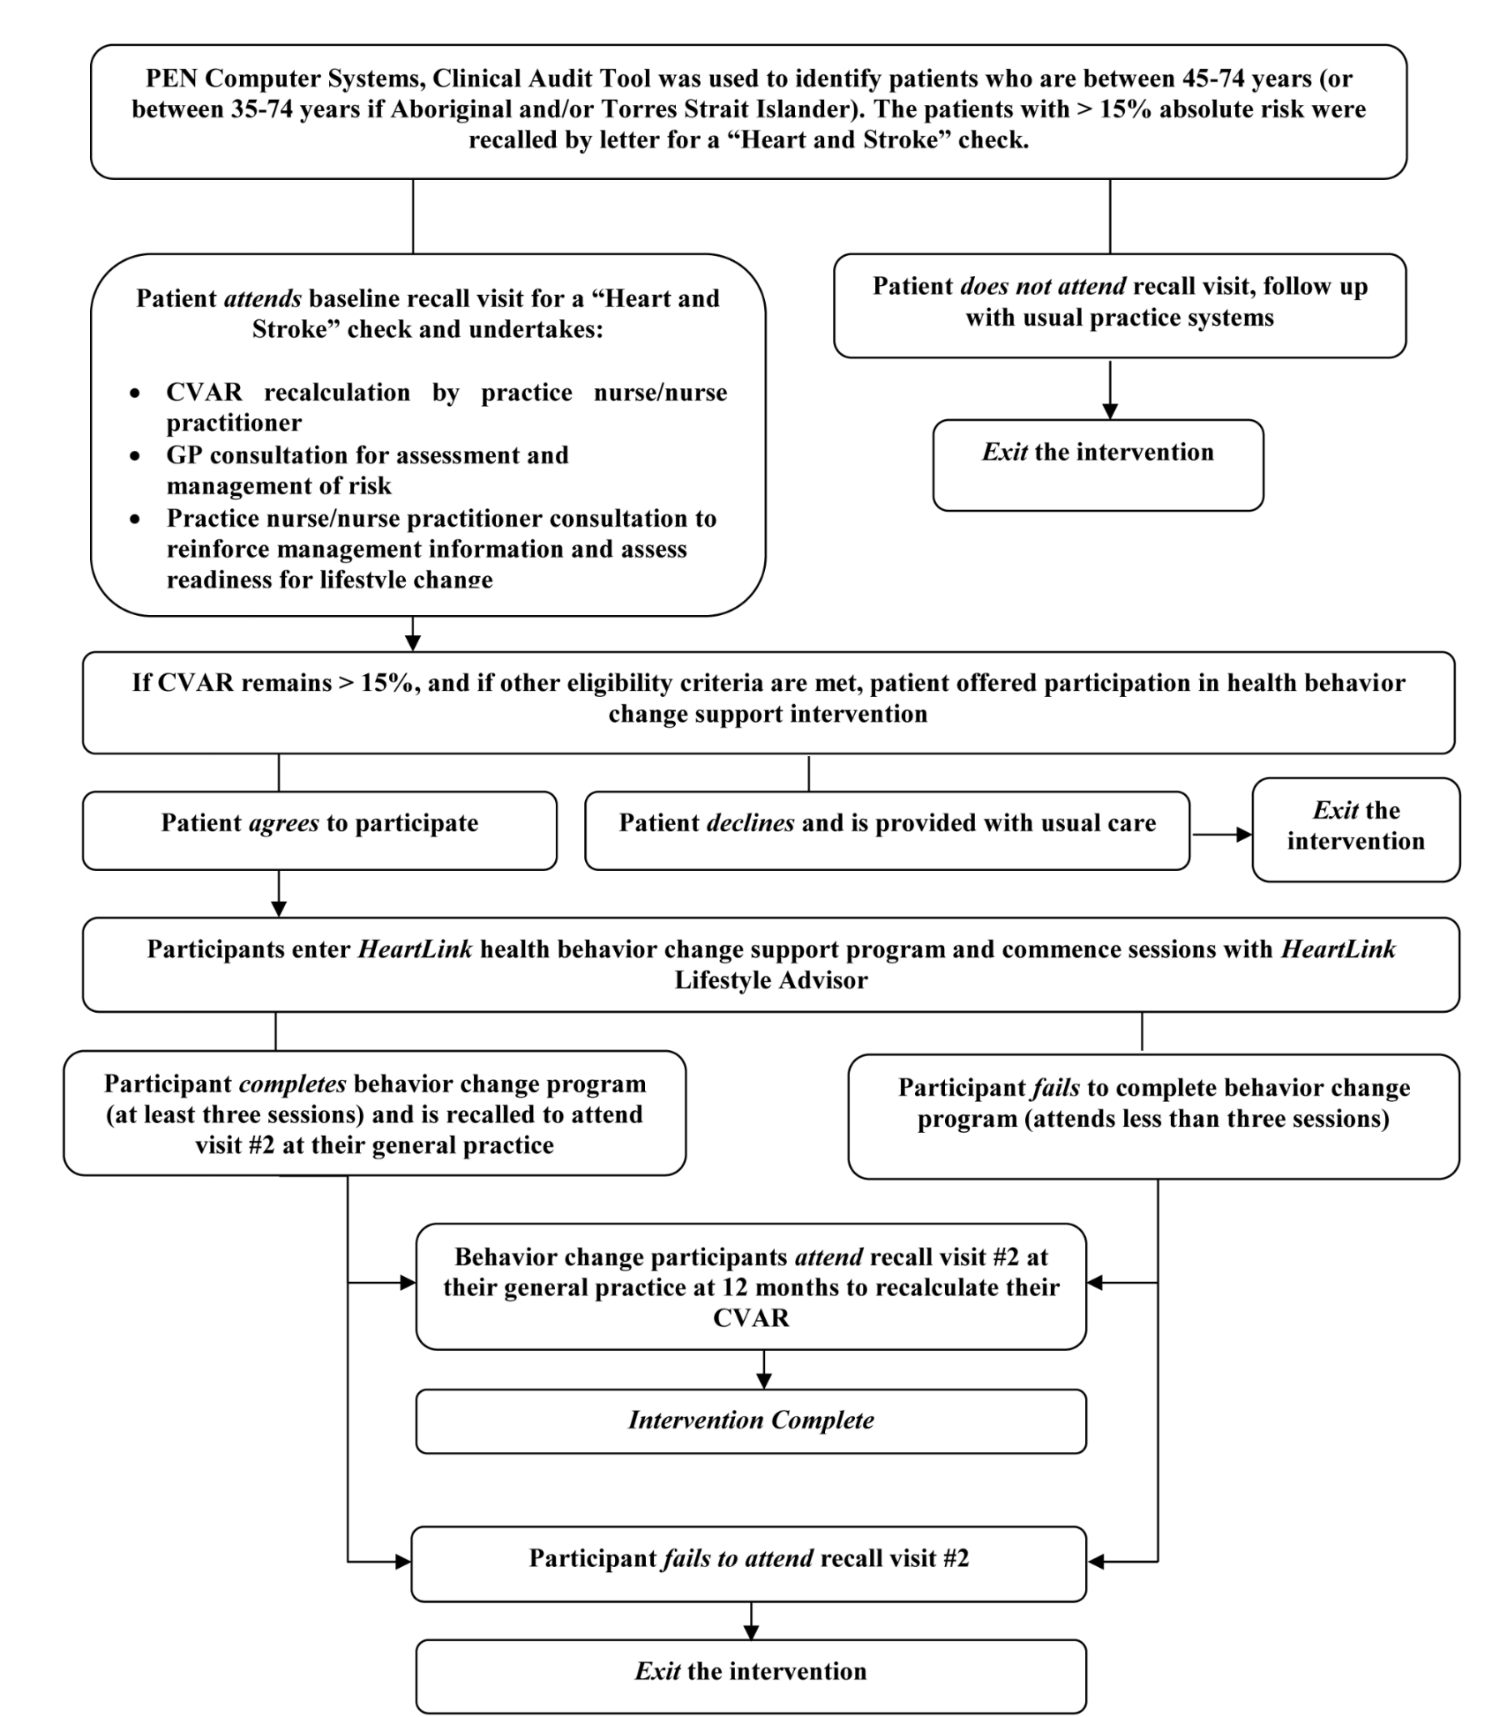 jrp improving the prevention of cardiovascular disease in primary figure 2 heartlink pilot participant pathway cvar cardiovascular absolute risk gp general practitioner